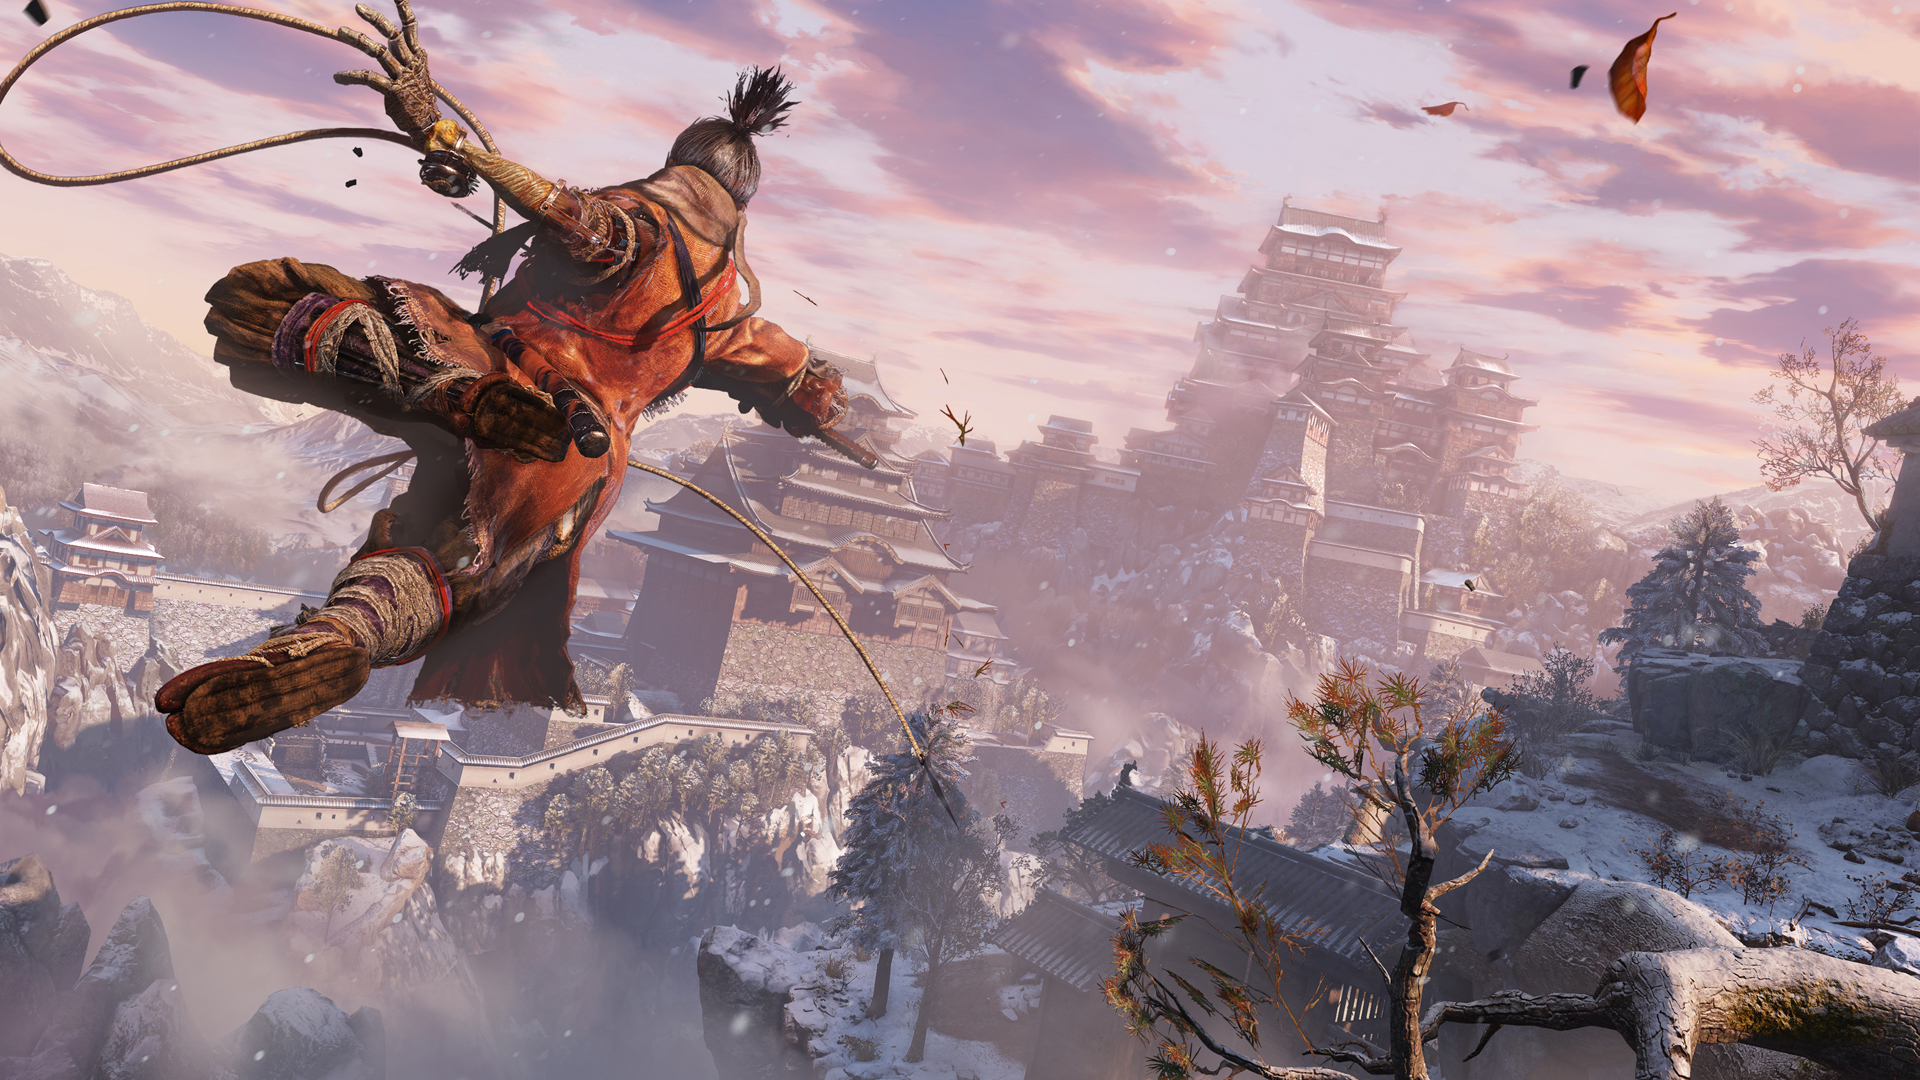 Snag Sekiro: Shadows Die Twice on PS4 for under $50 at Amazon - VG247